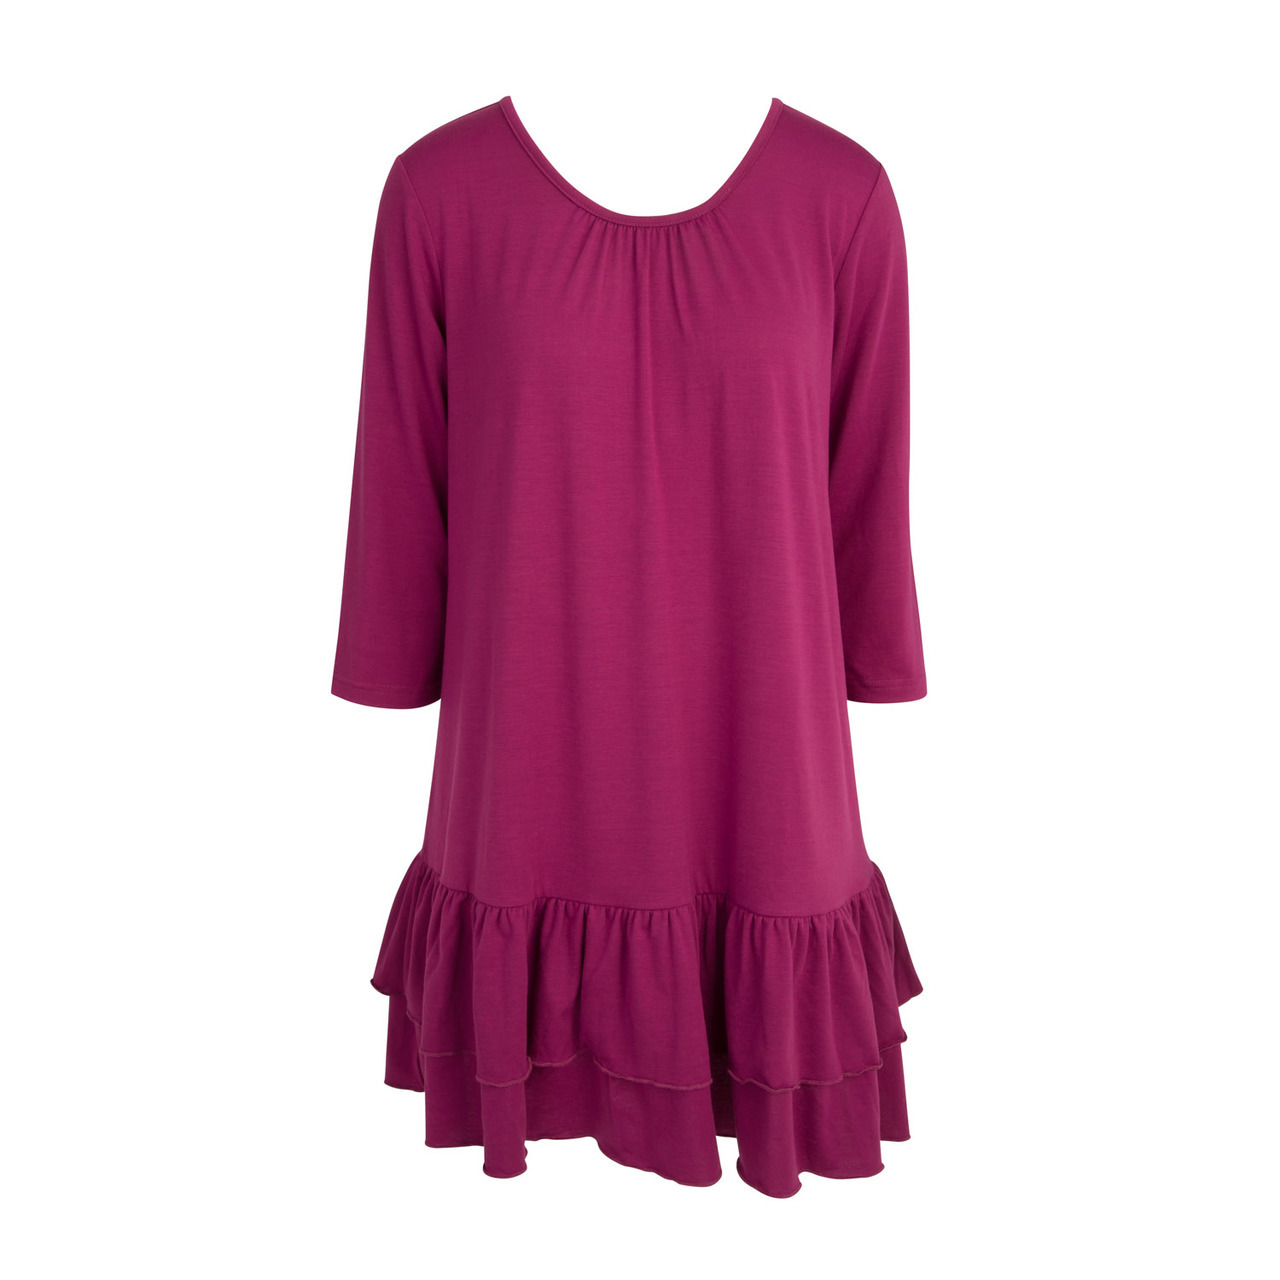 Double Ruffle Tunic Dress - Fuchsia